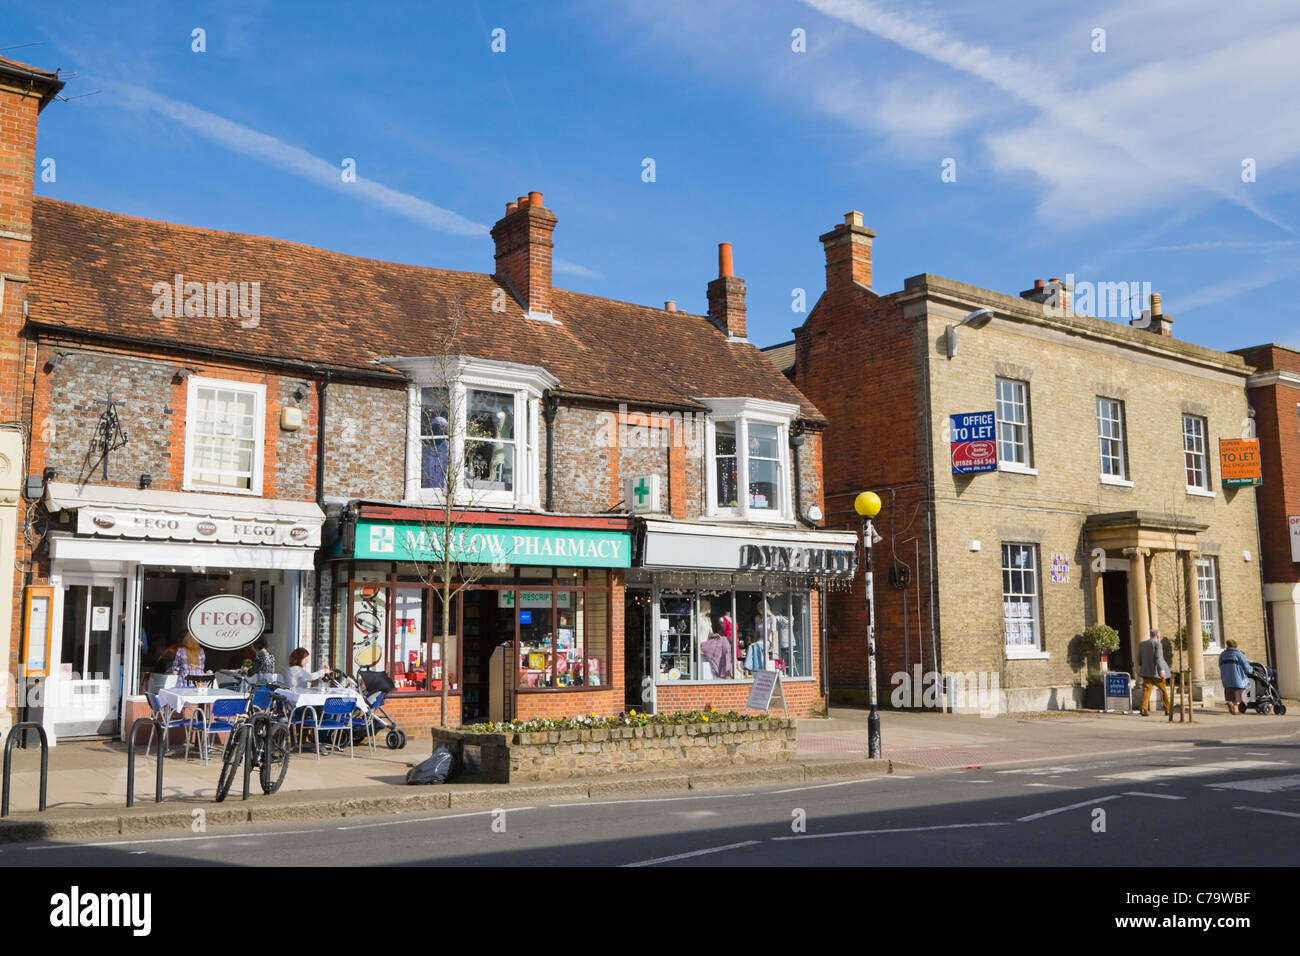 High Street, Marlow, Buckinghamshire, England, UK Stock Photo